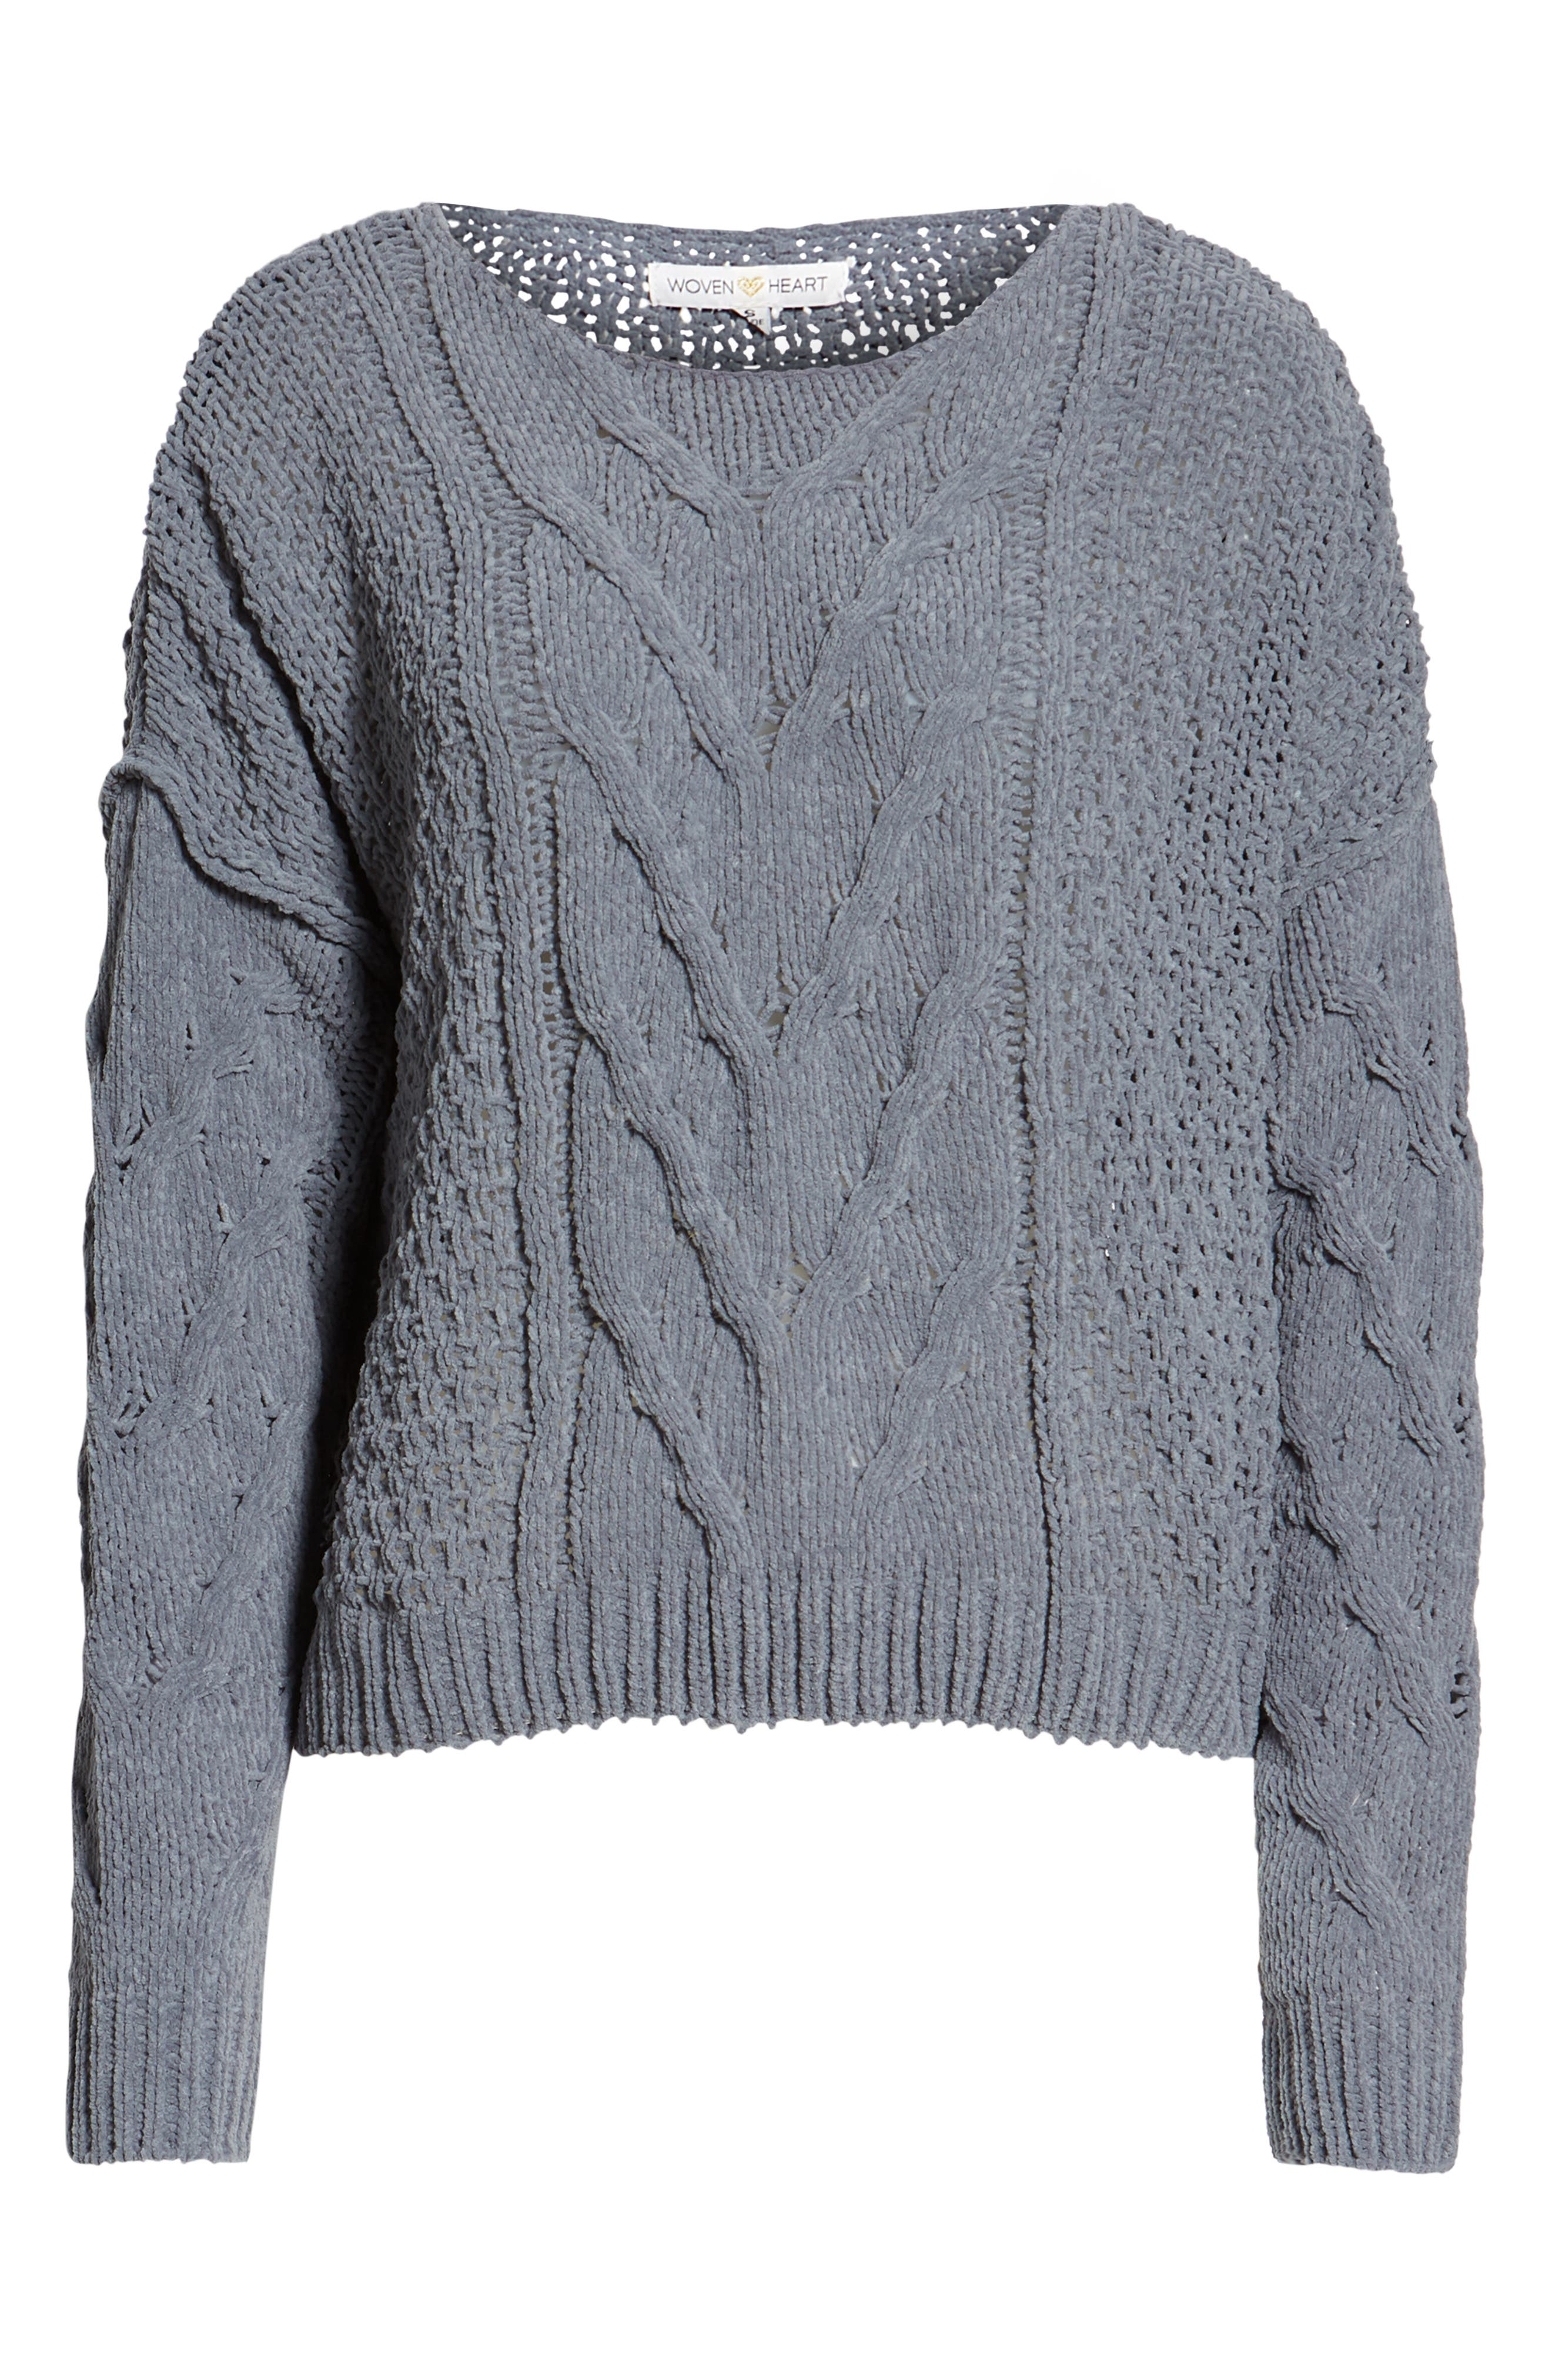 Cable Knit Sweater,                             Alternate thumbnail 6, color,                             GREY